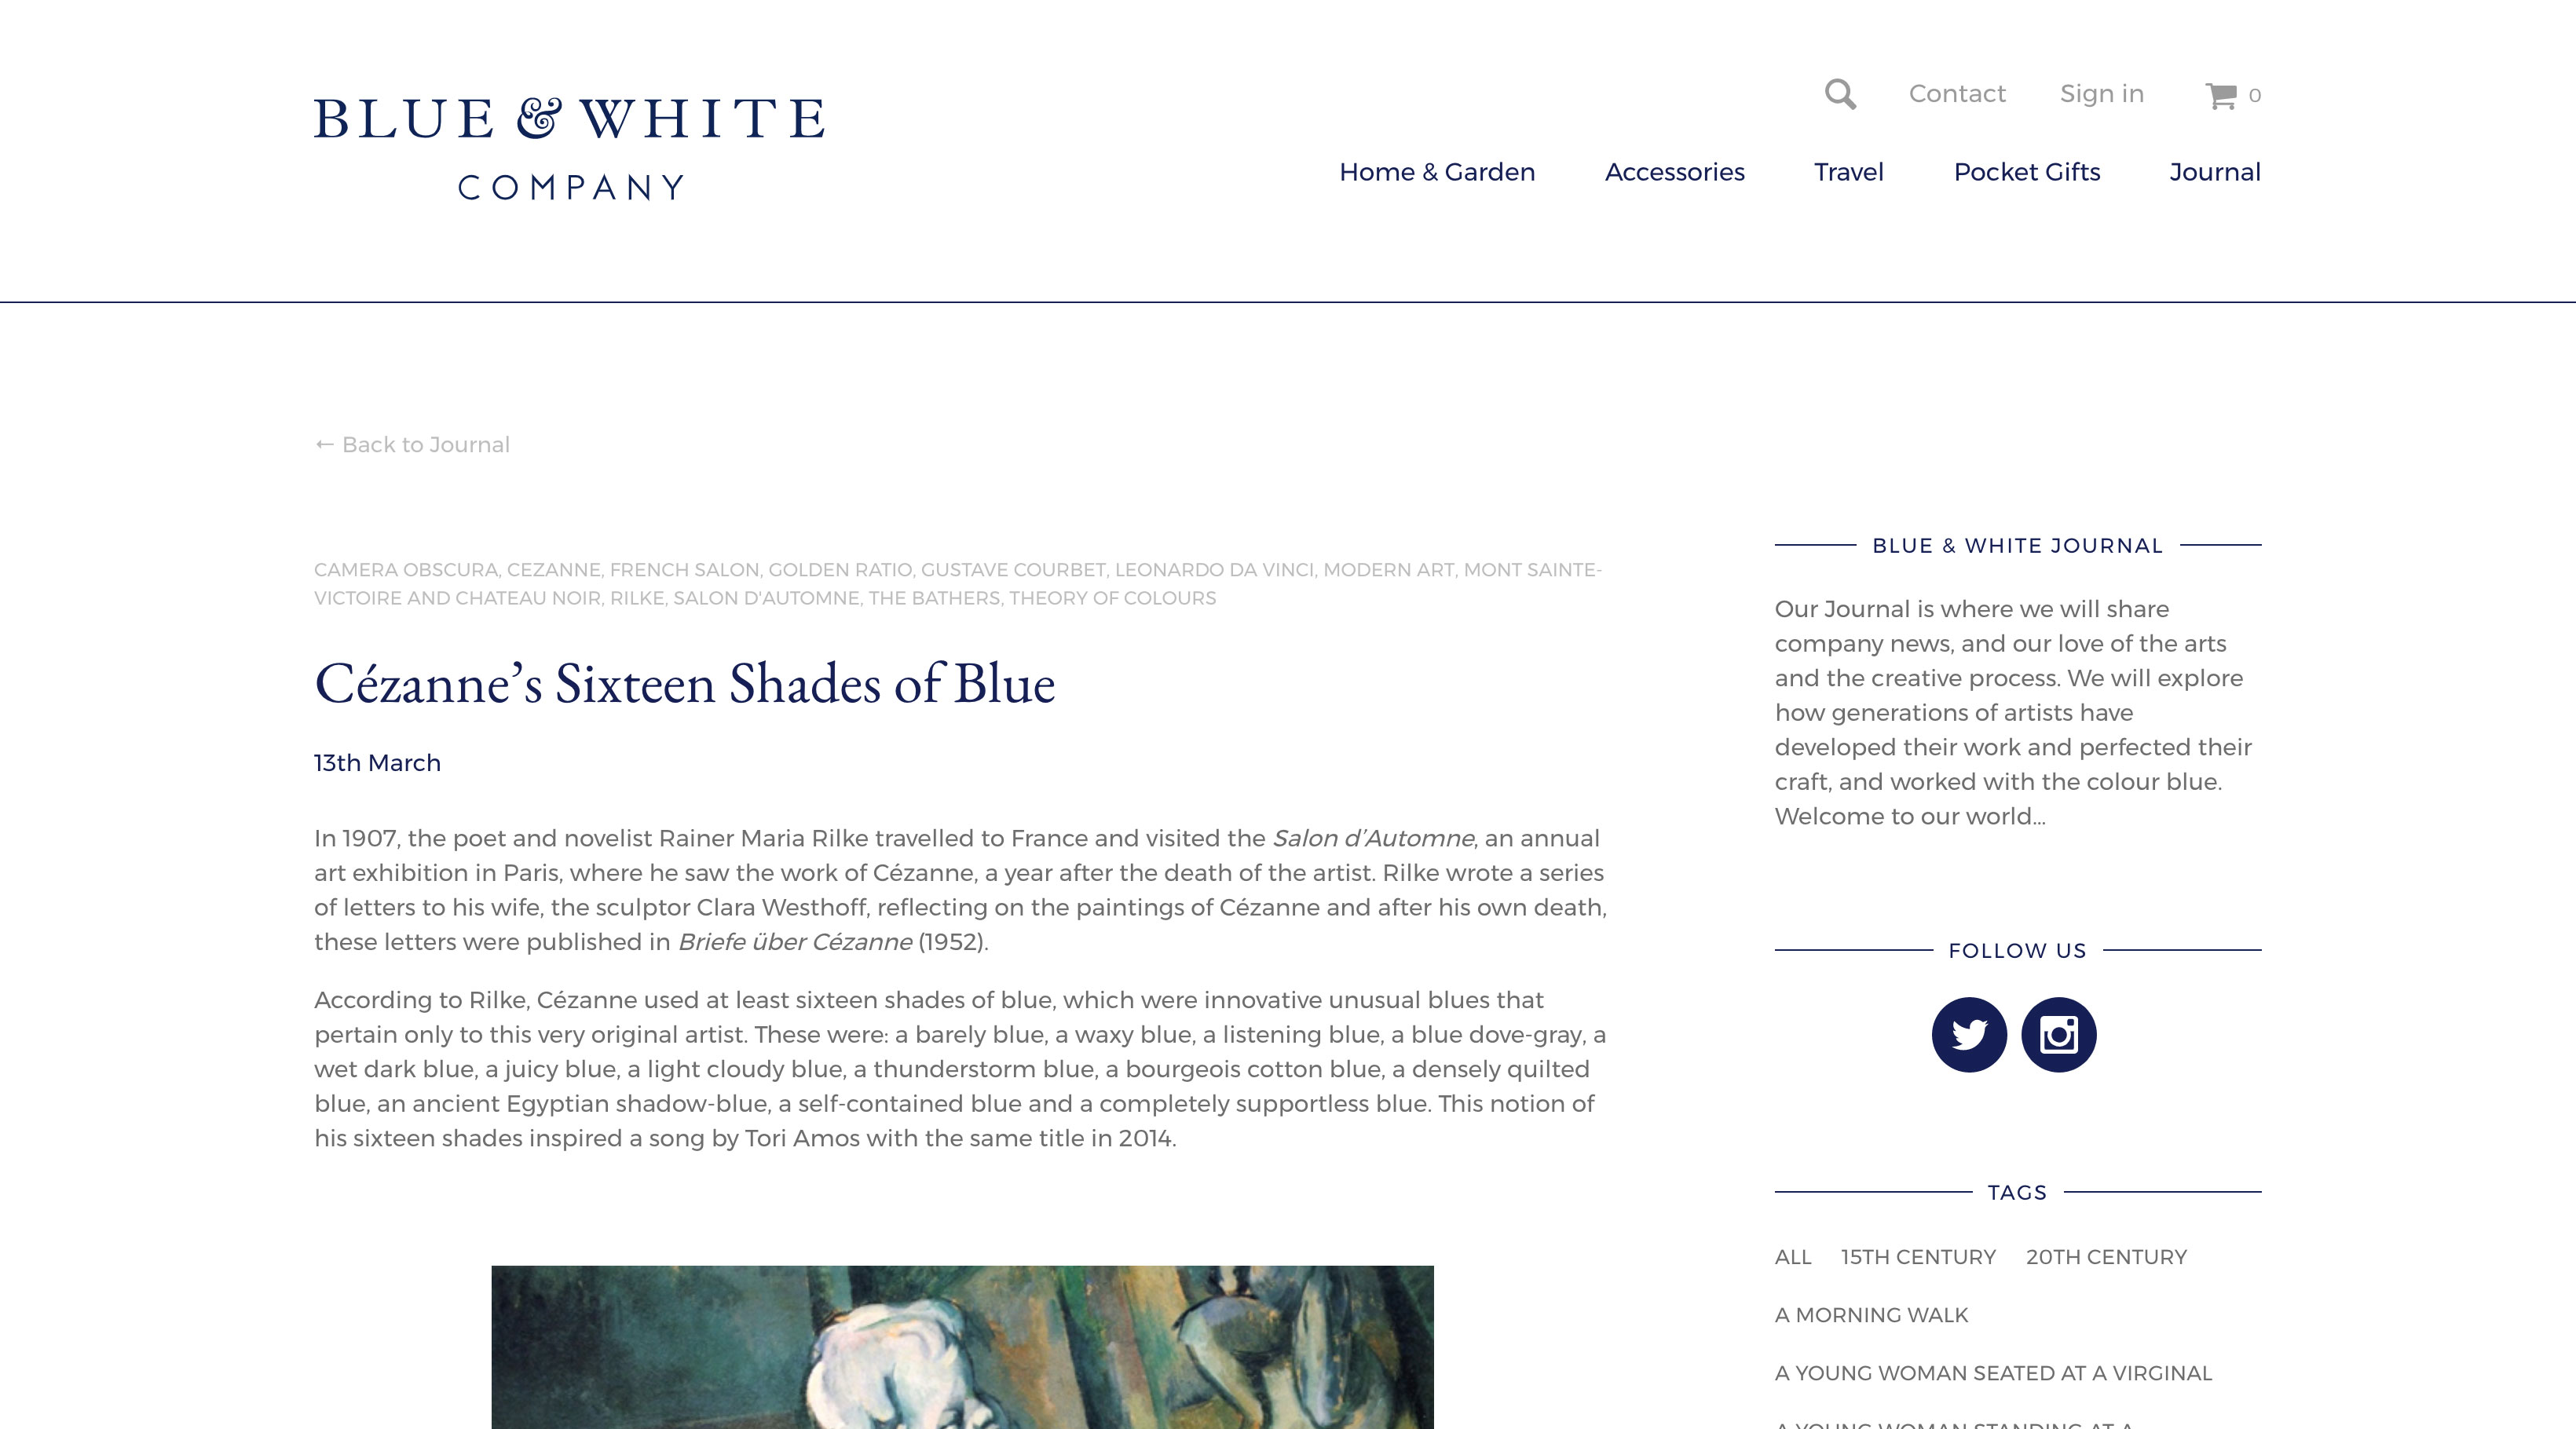 Blue & White Company screenshot